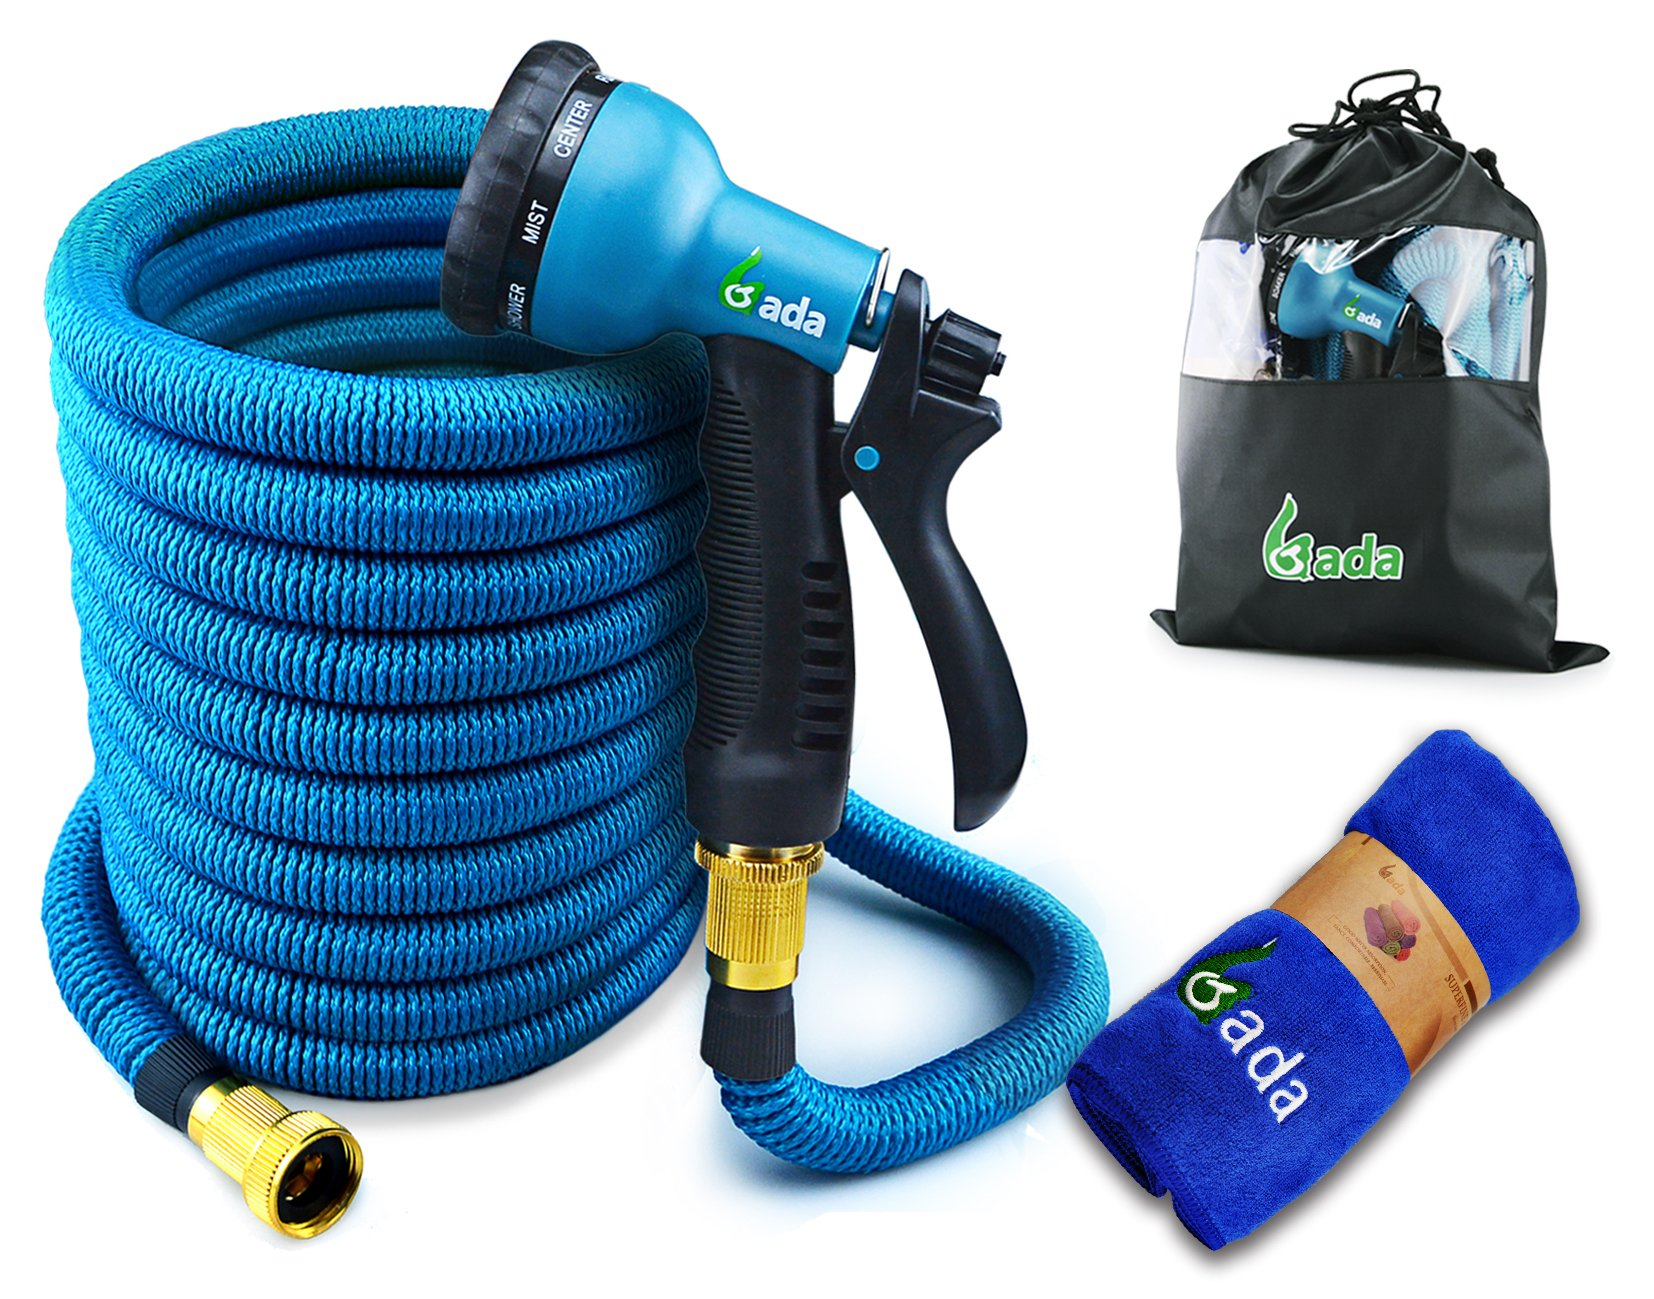 Gada Garden Hose -Expandable Water Hoses Set 8-Way Spray Nozzle - STRONG Lightweight Coil Flex, Collapsible Flexible Expanding Three LAYER Latex in Pocket (50ft)